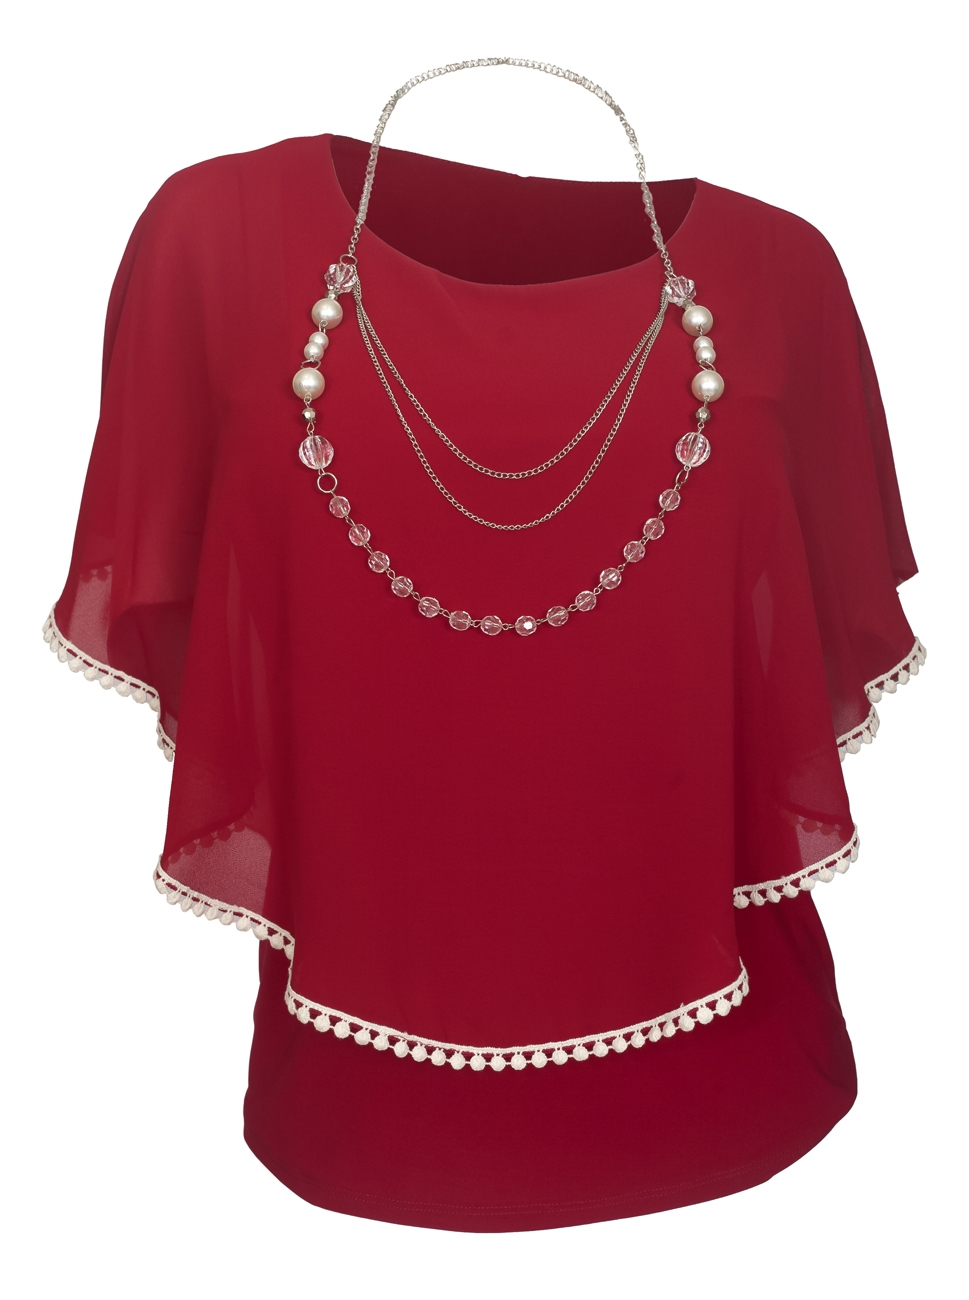 Plus Size Layered Poncho Top Crochet Trim Burgundy 1792